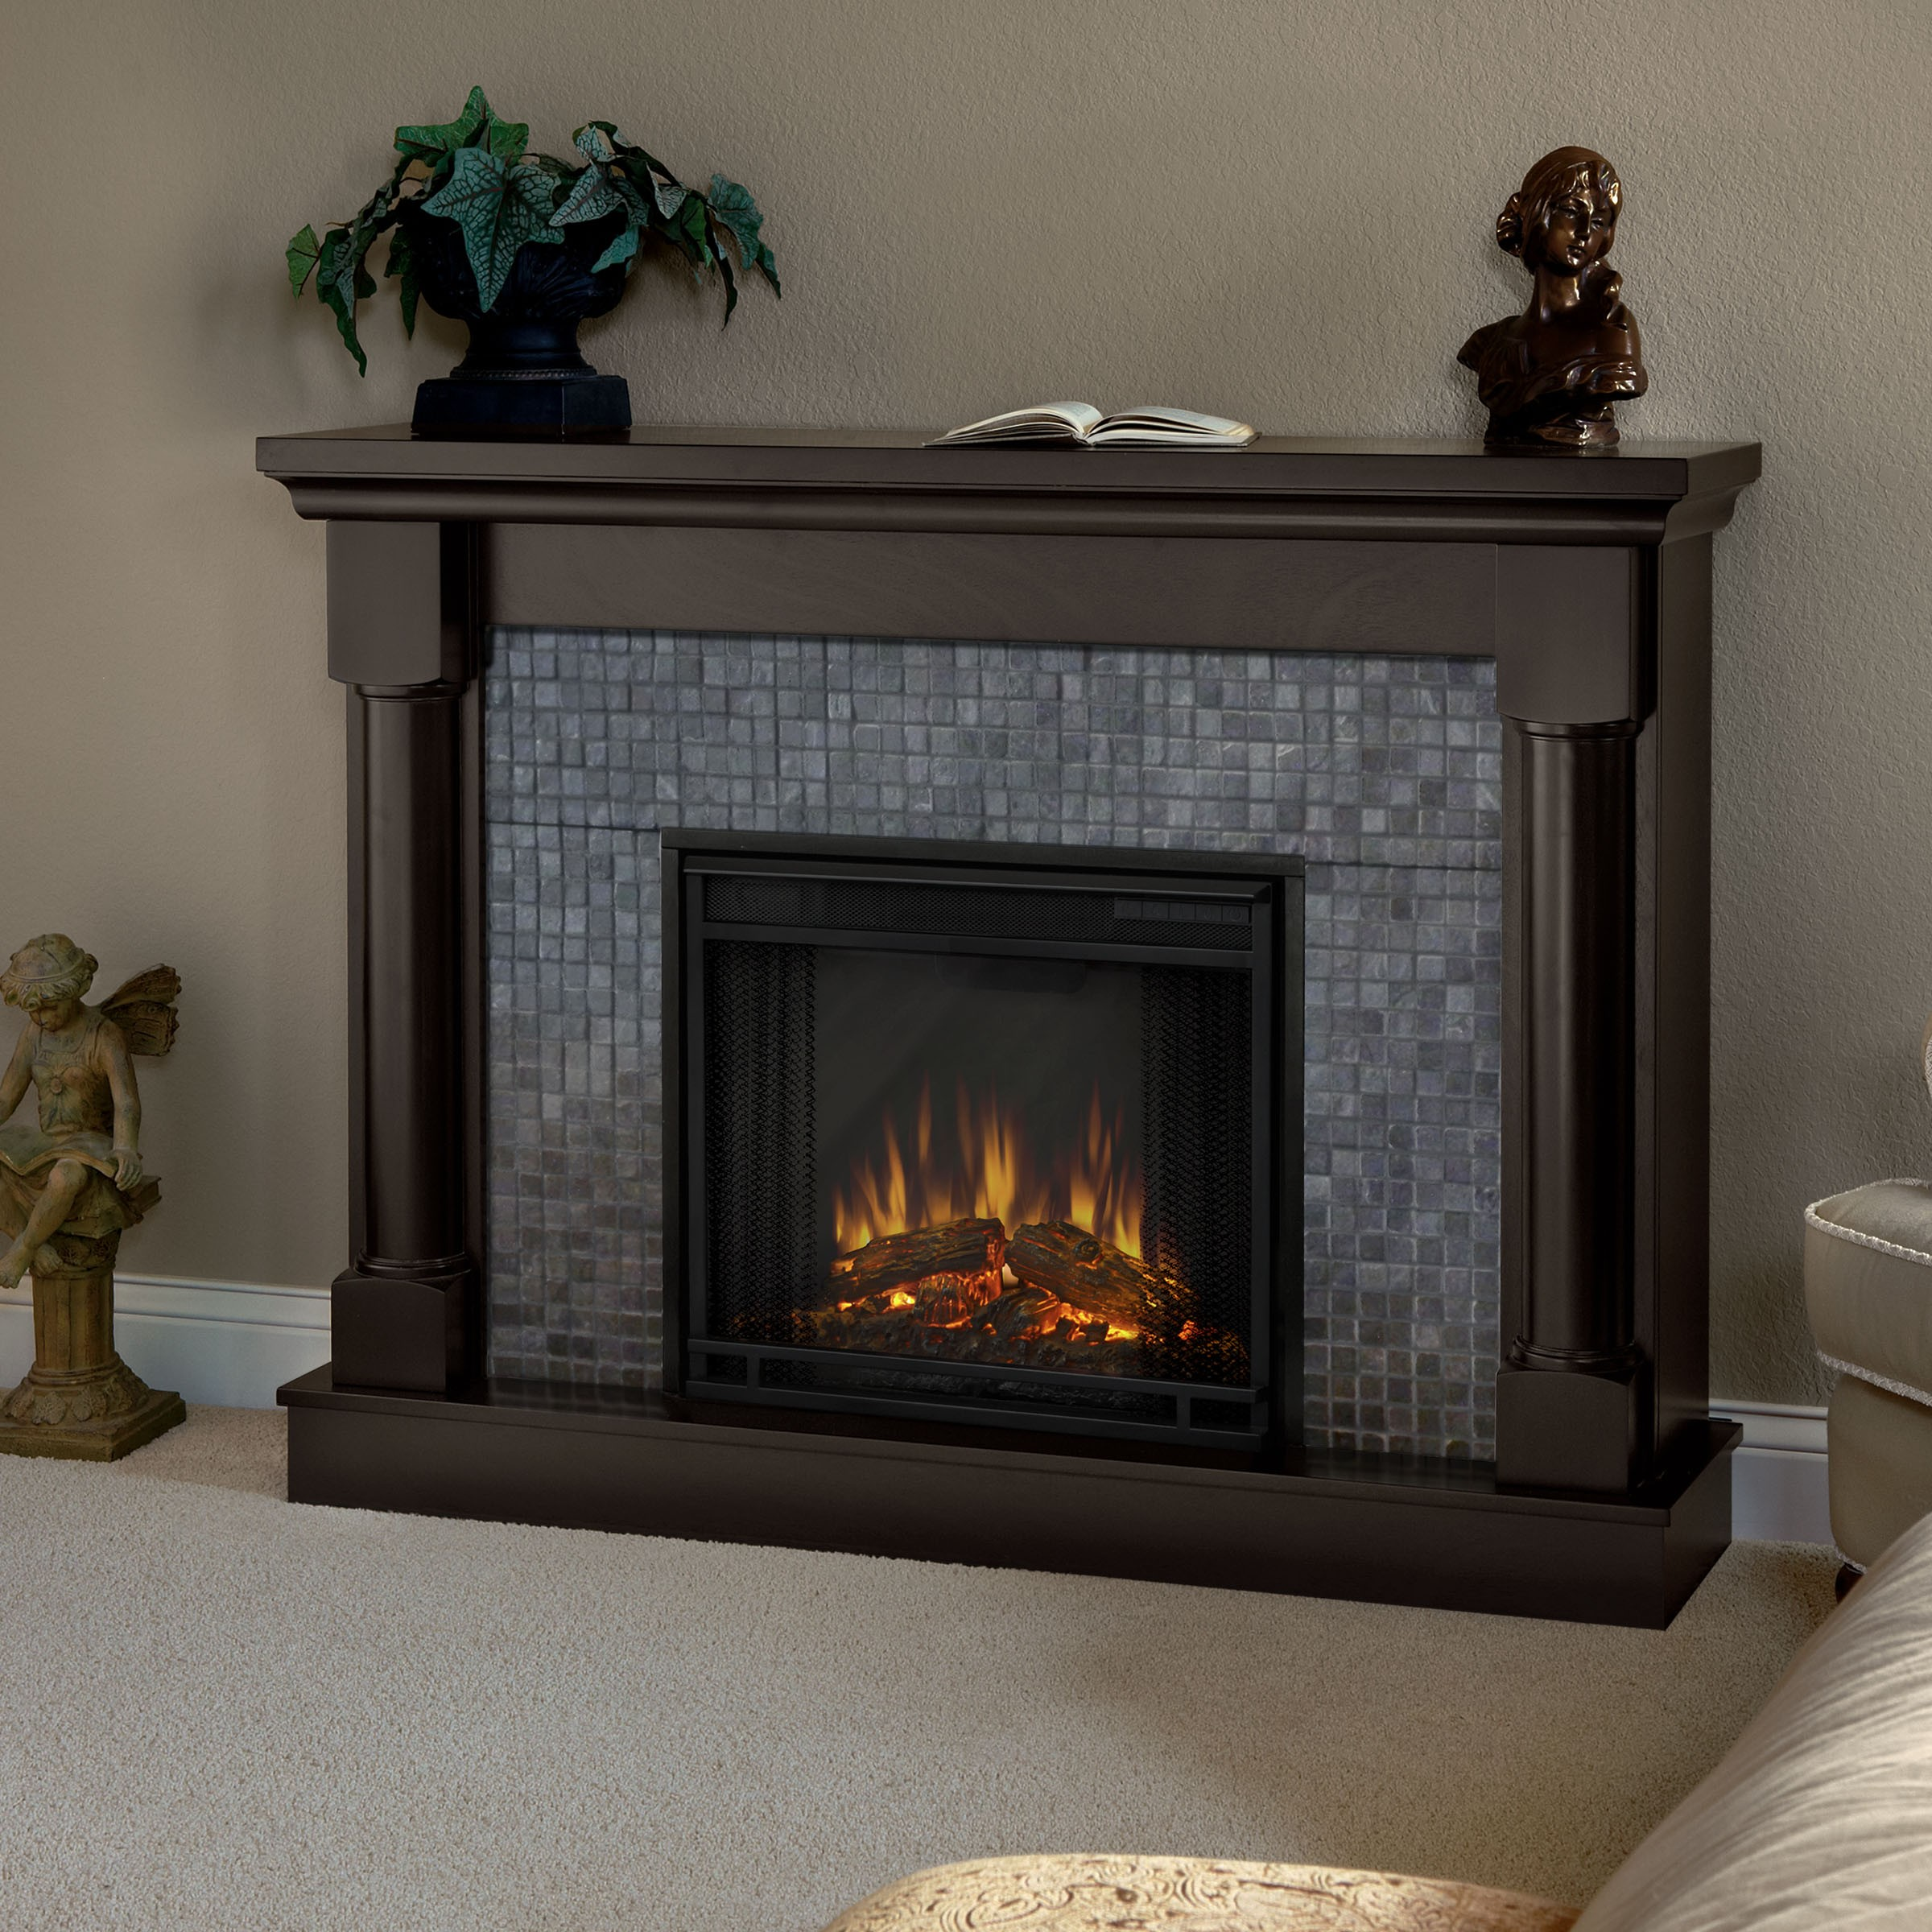 Fireplace Surround Kit | Lowes Fireplace Mantel | Fireplace Kits Lowes